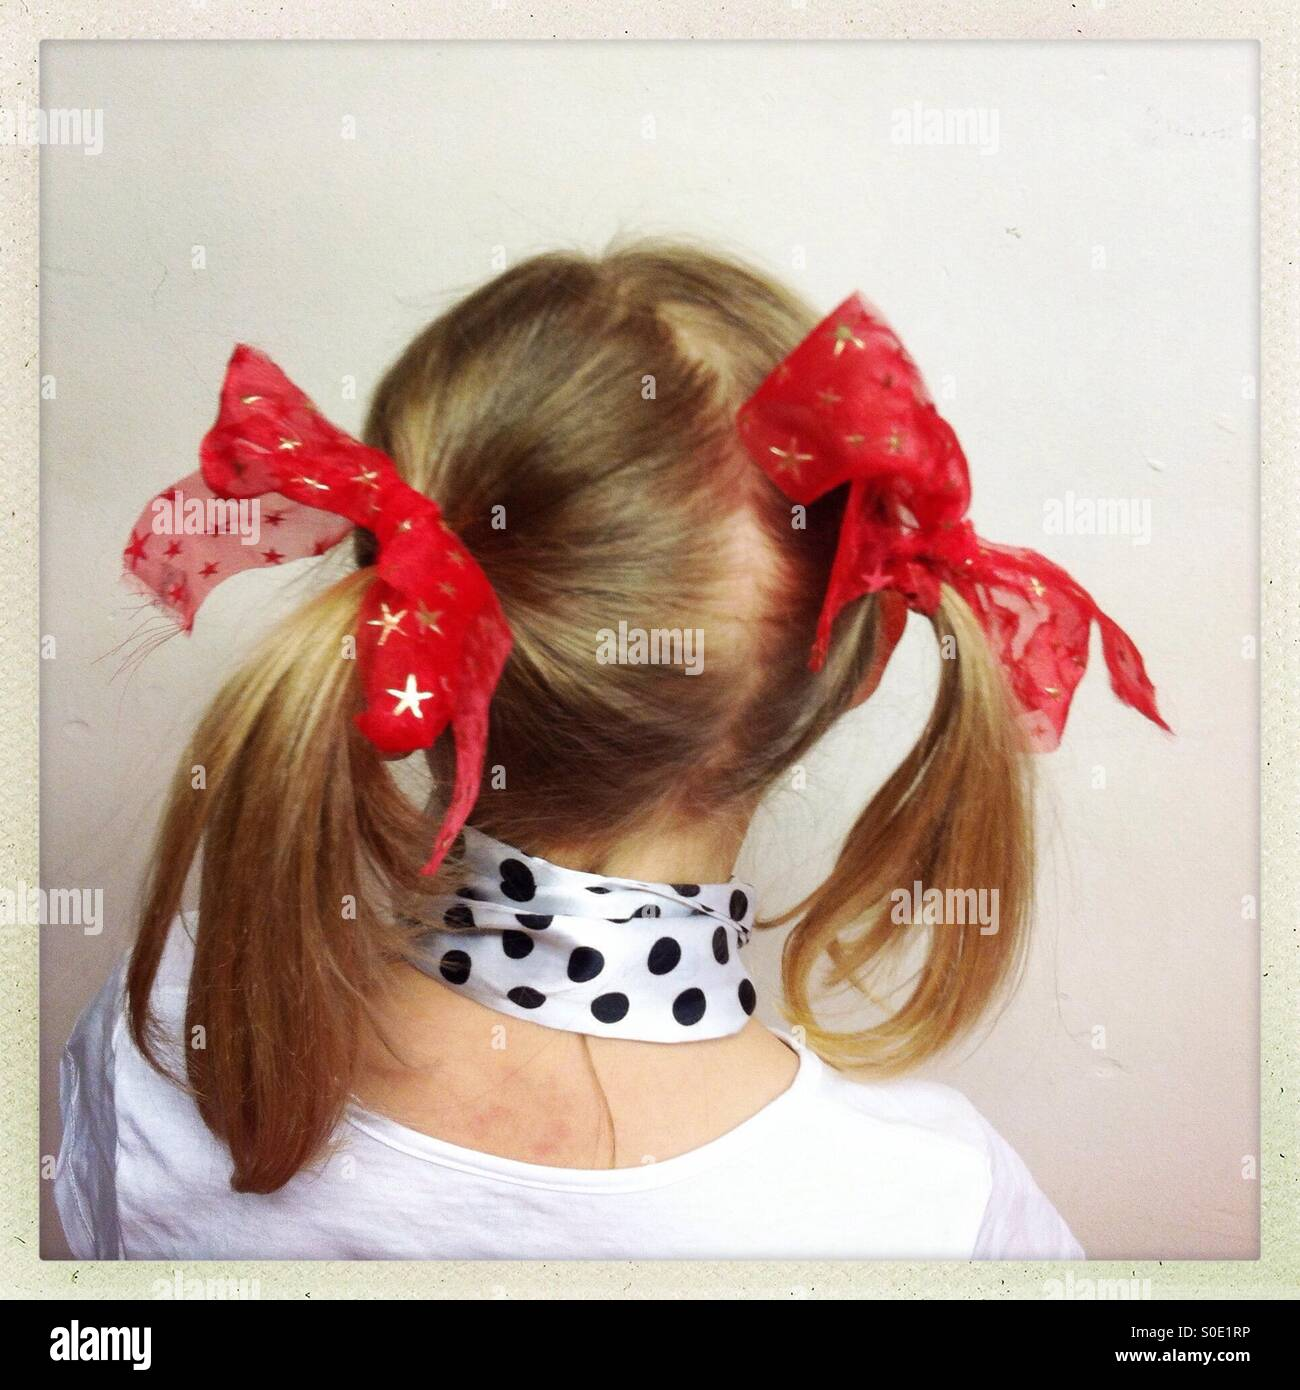 Bunches and ribbons - Stock Image